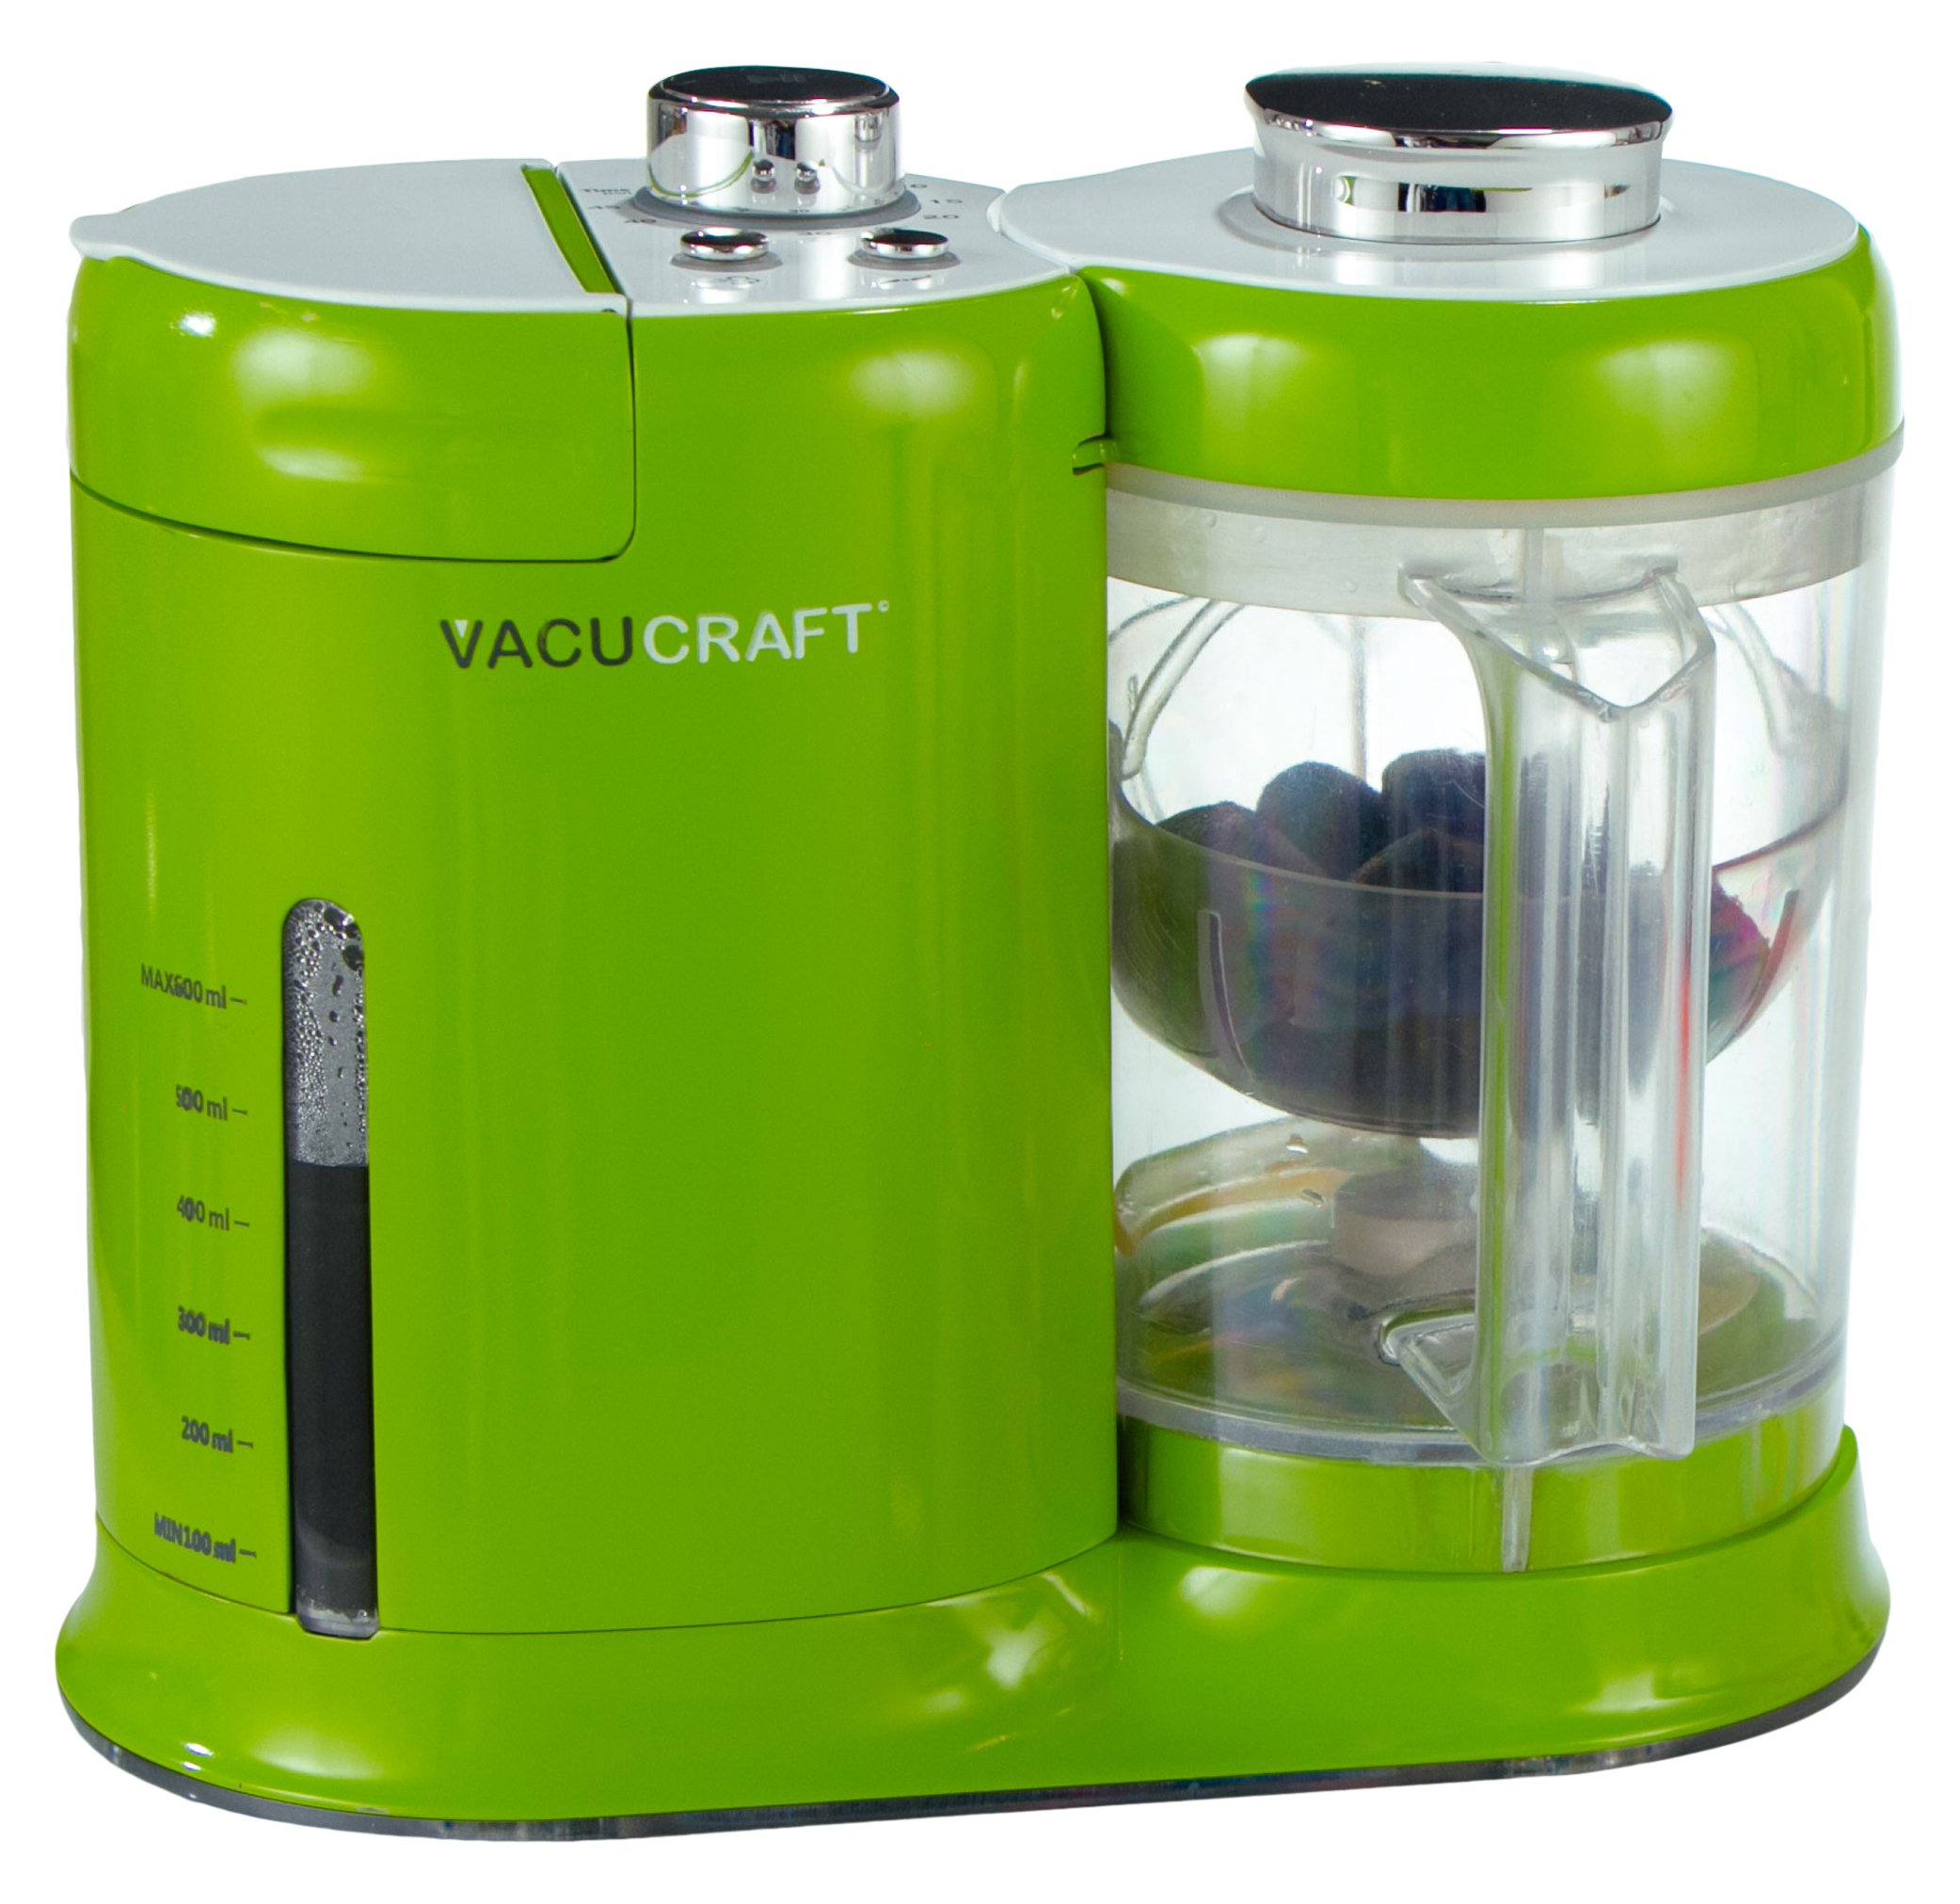 Vacucraft 4-in-1 Baby Maker, Processor to Steam, Puree, Blend Homemade Food, Green by Vacucraft